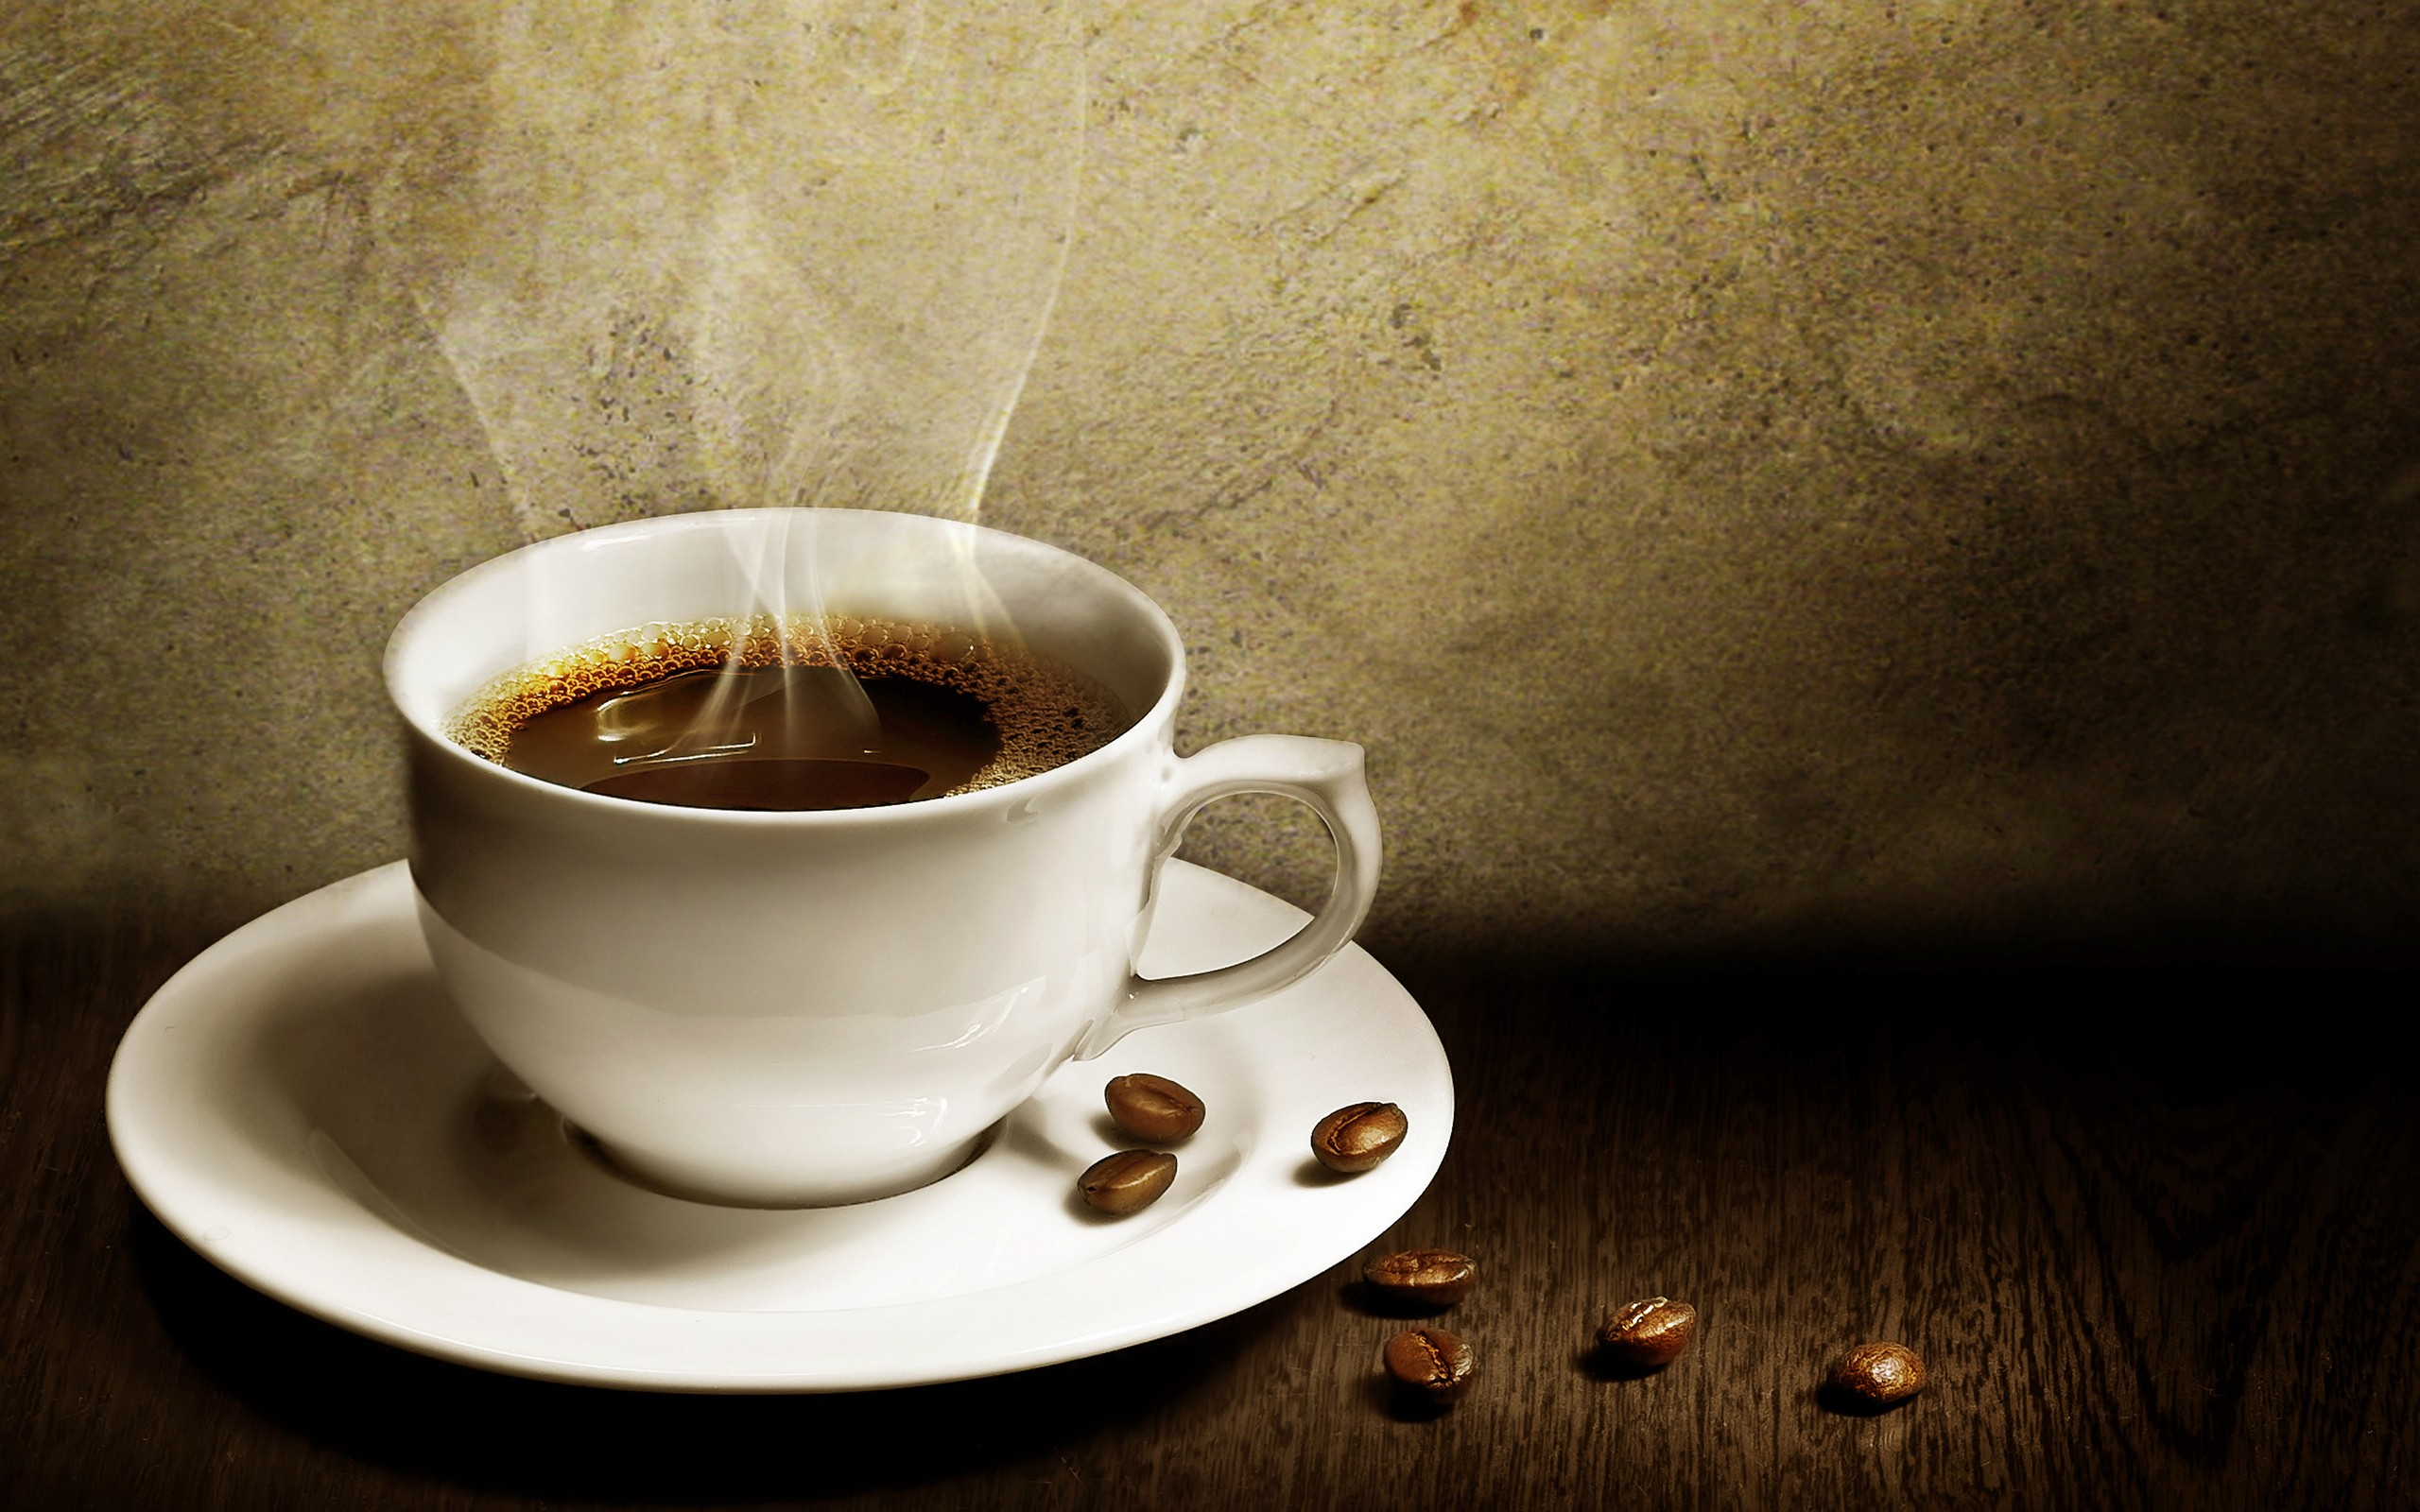 How To Photograph A Hot Steaming Cup Of Coffee Or Tea